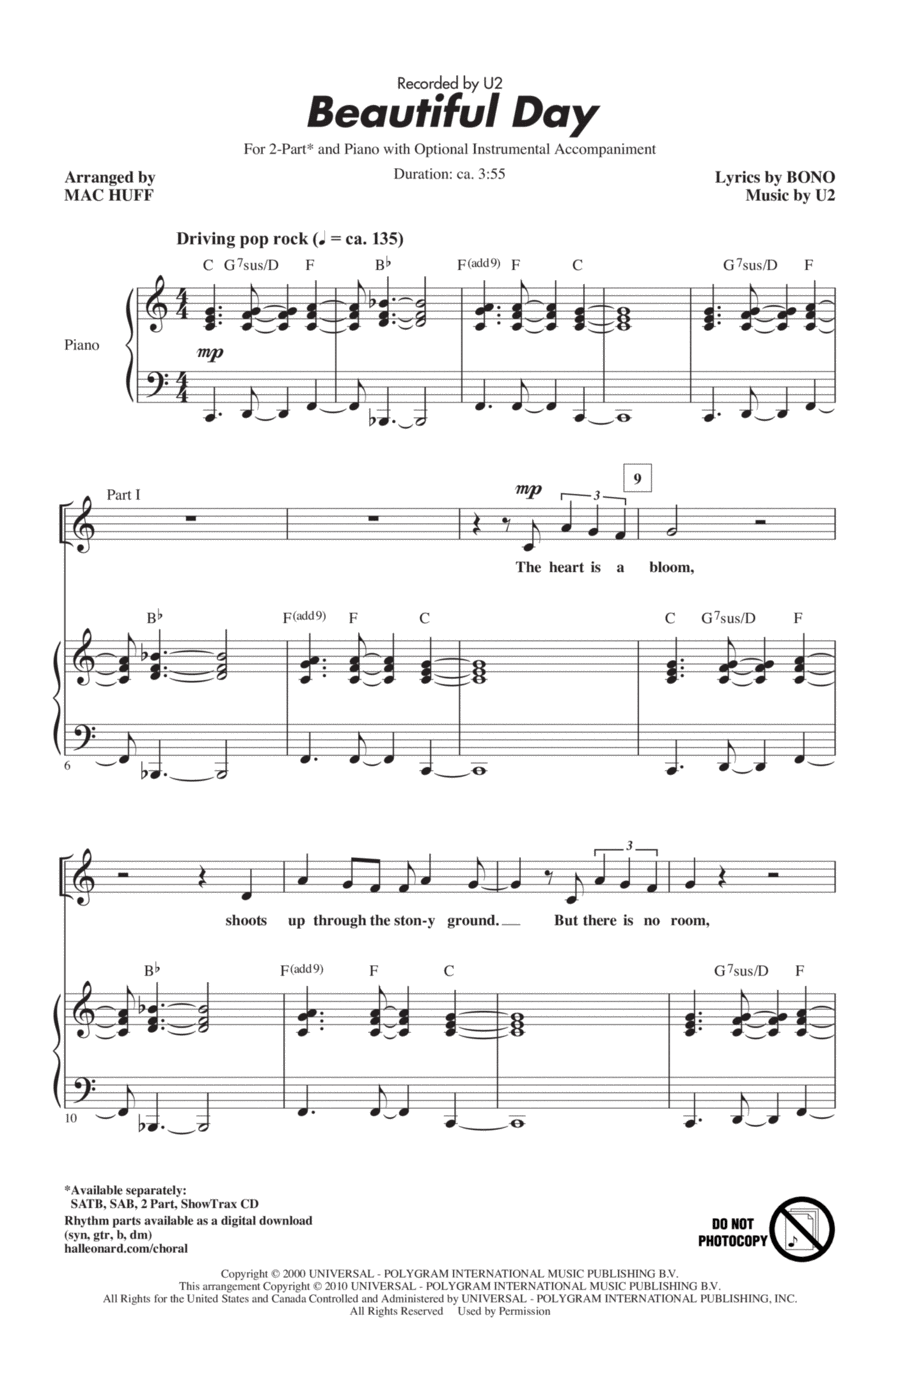 download beautiful day sheet music by u2 sheet music plus. Black Bedroom Furniture Sets. Home Design Ideas